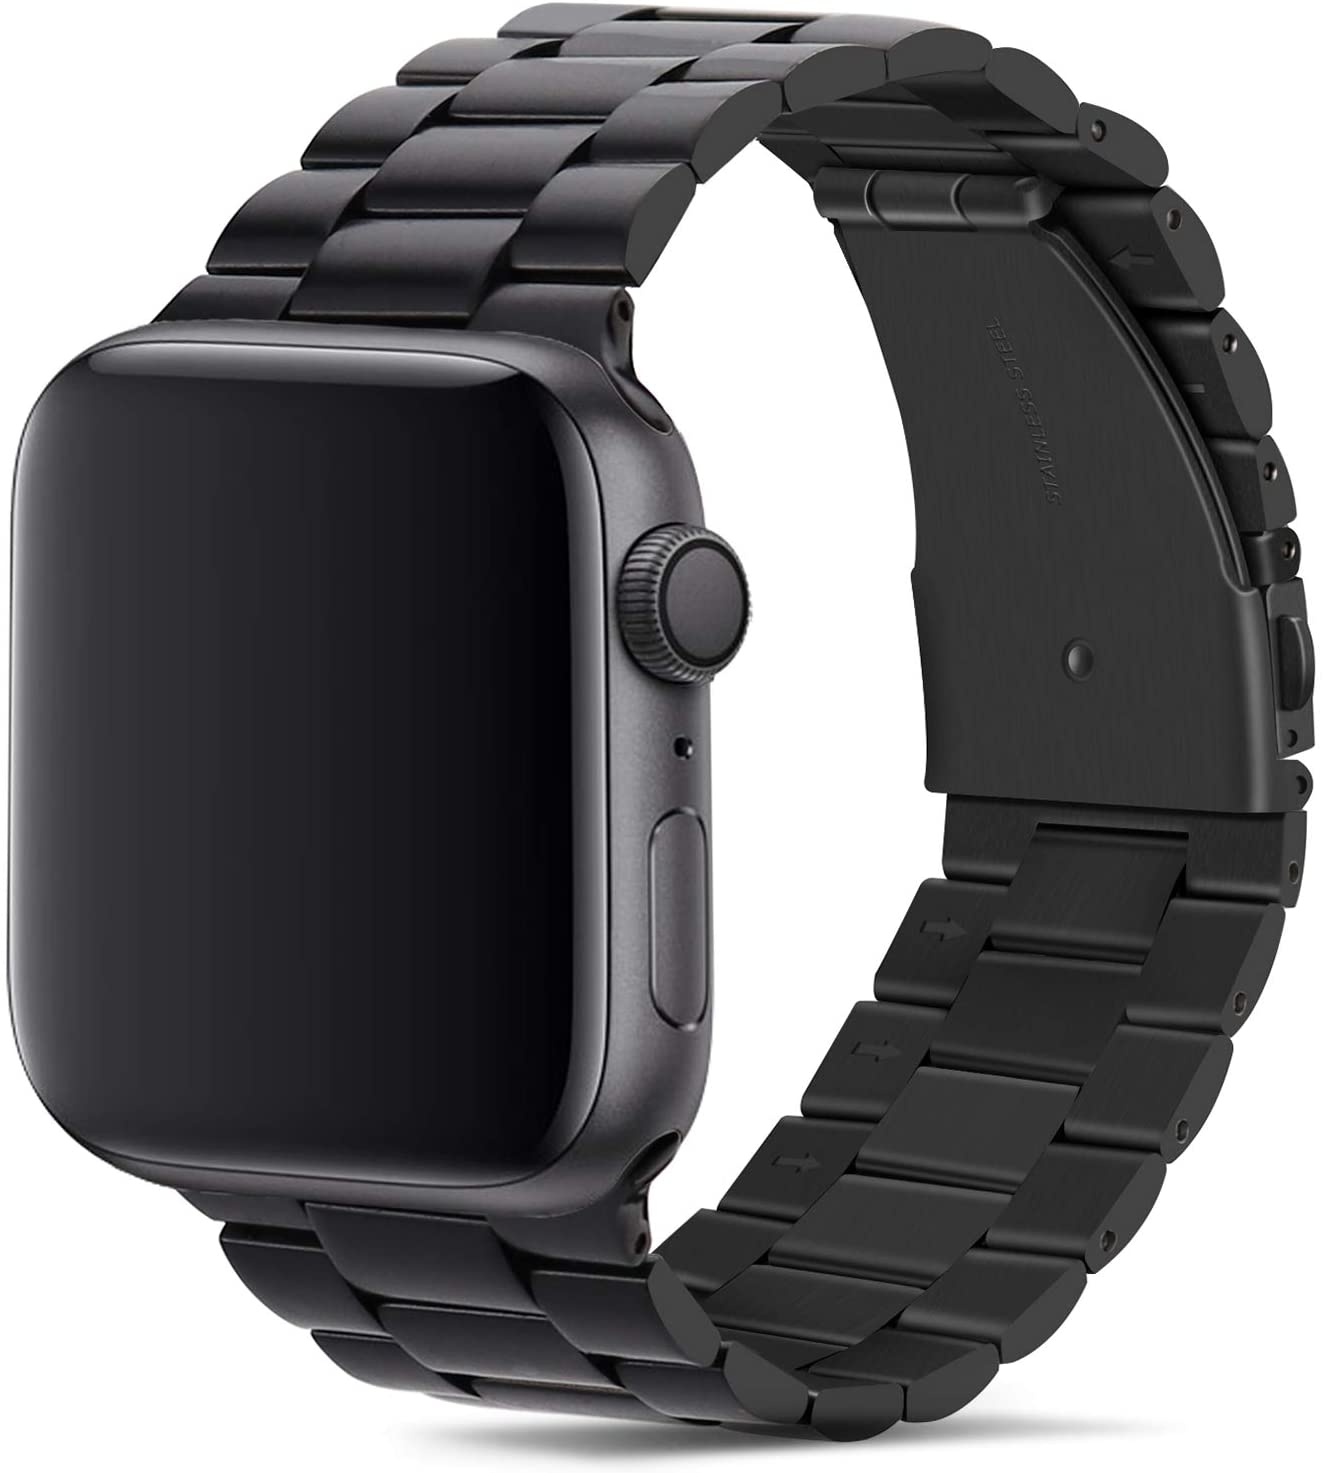 Tasikar para Correa Apple Watch 42mm 44mm Metal de Acero Inoxidable Correa de Repuesto Compatible con Apple Watch Series 5 Series 4 (44mm) Series 3 Series 2 Series 1 (42mm) - Negro